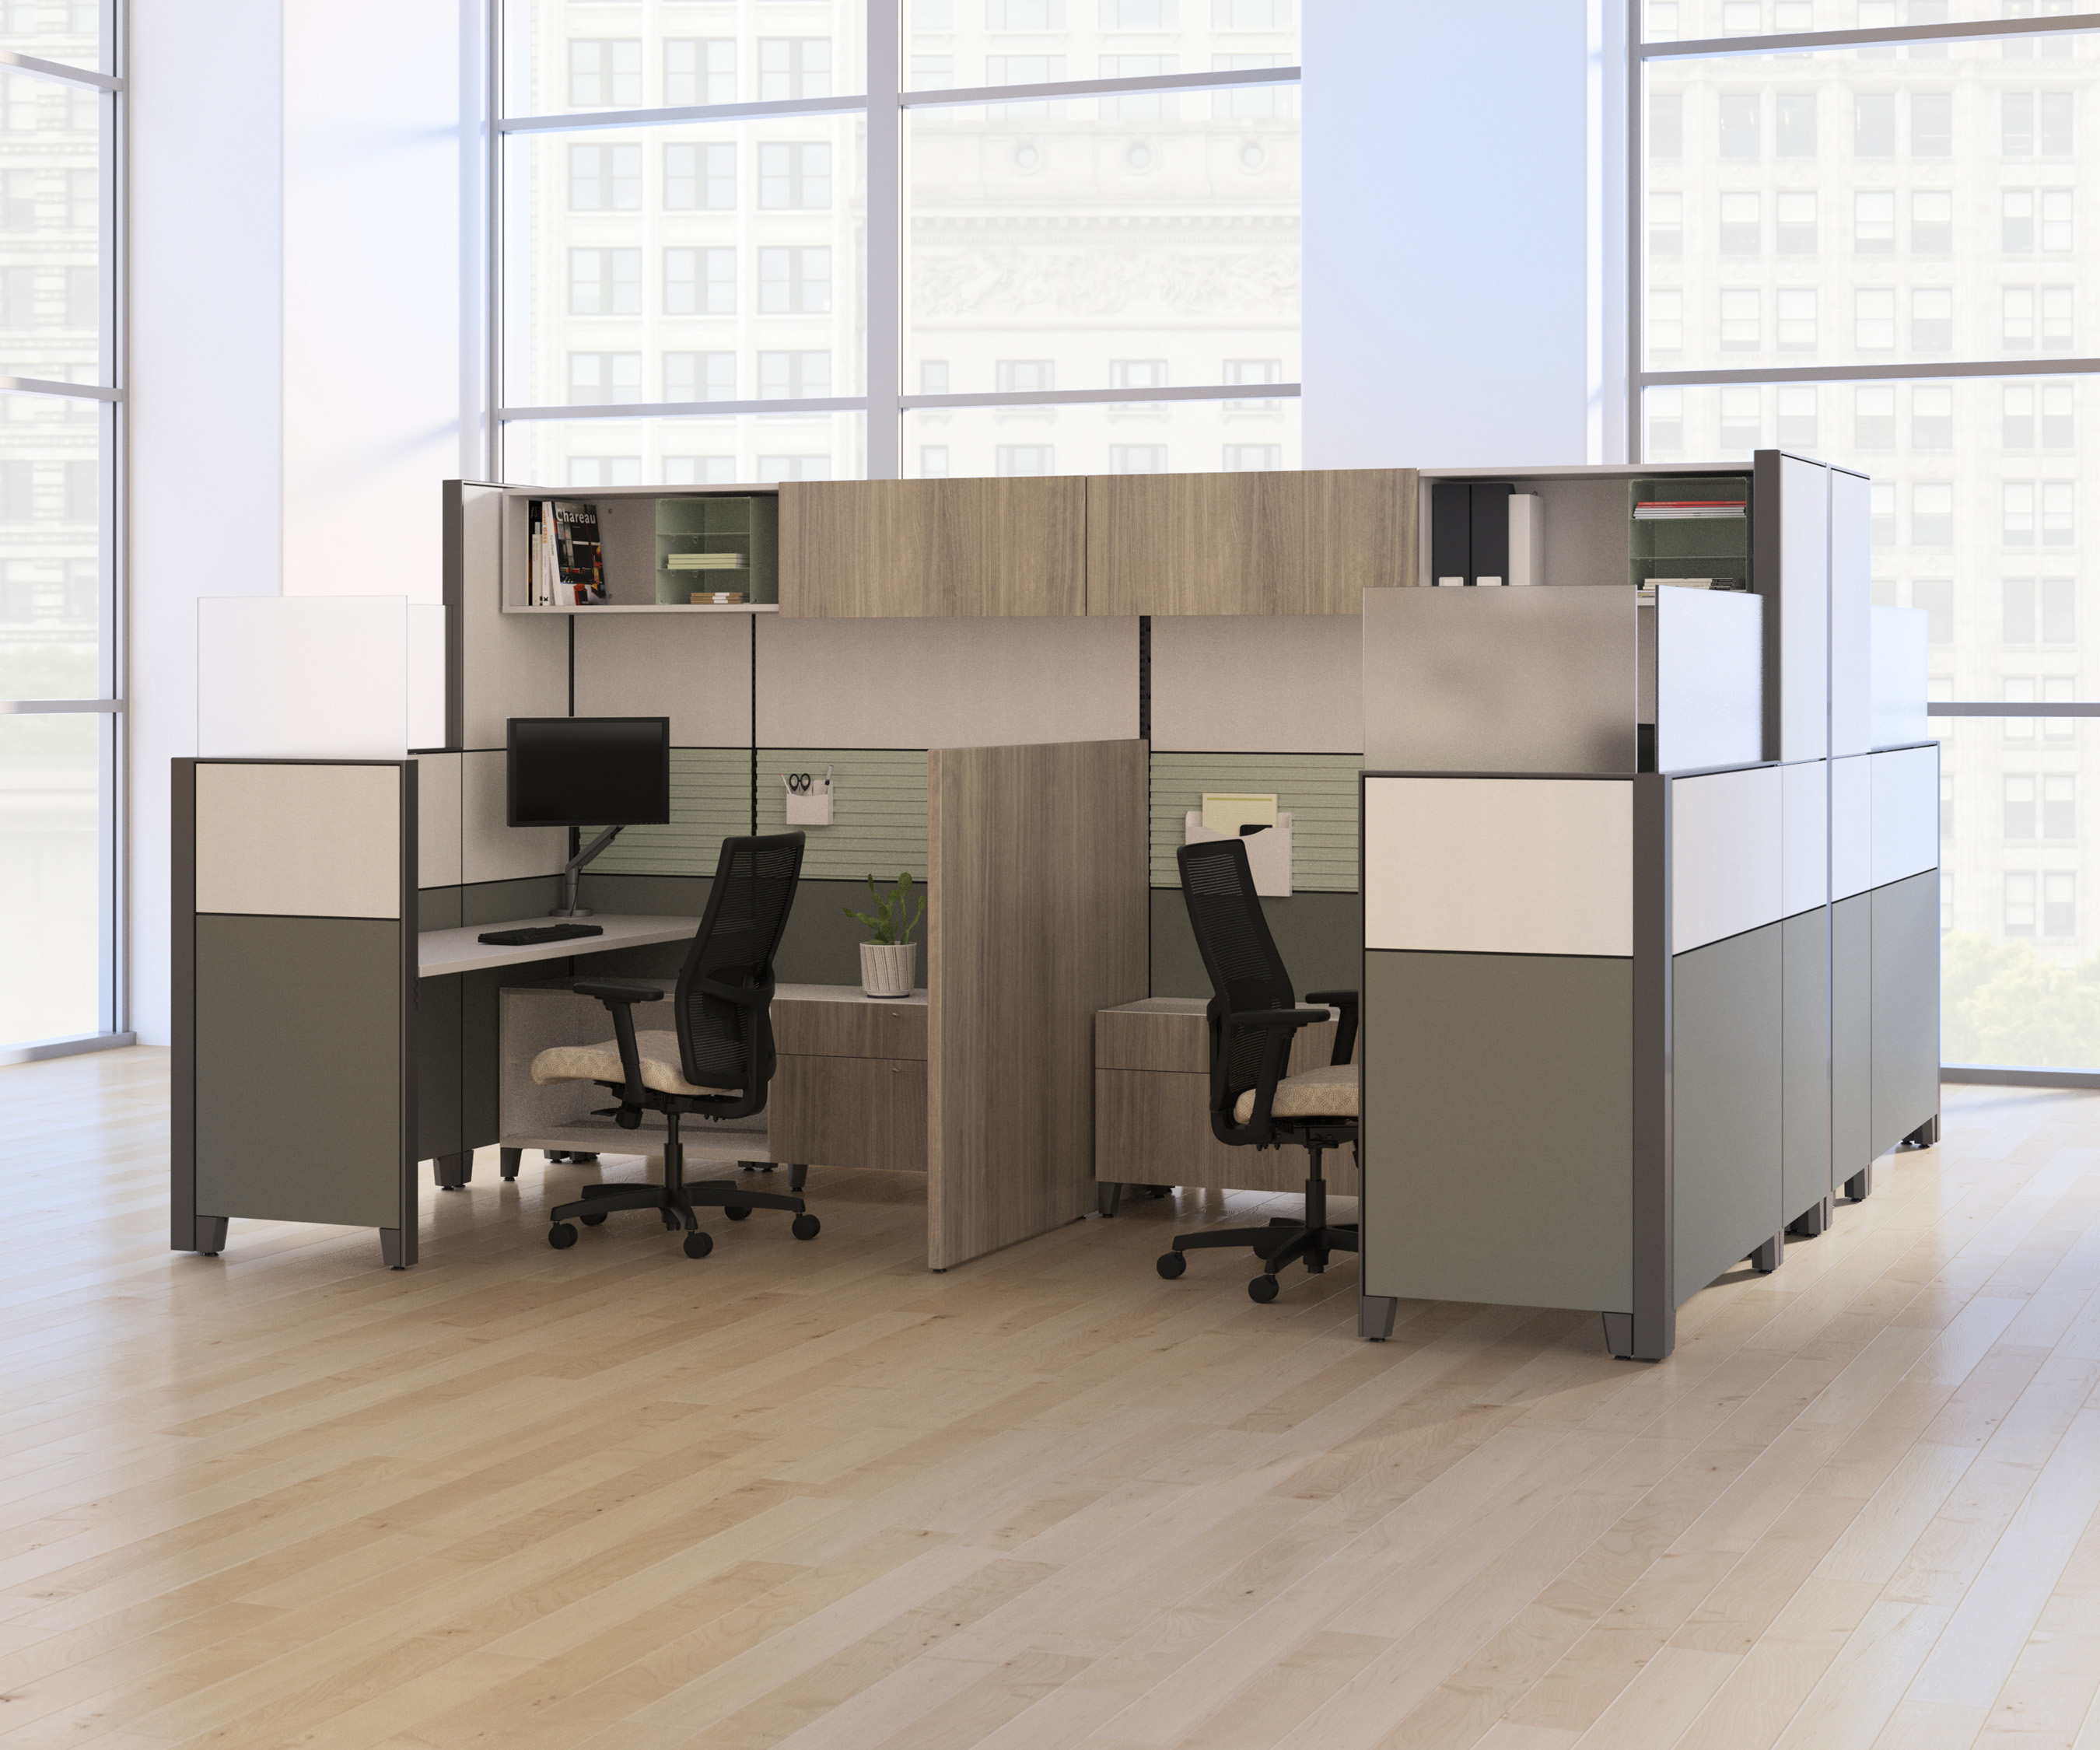 Abound, Accelerate, and Verse panels are available in cleanable vinyl or laminate options to help prevent the spread of germs within individual workstations. Glass stack-ons can be added to many installations to increase the panel height, while still letting in natural light.